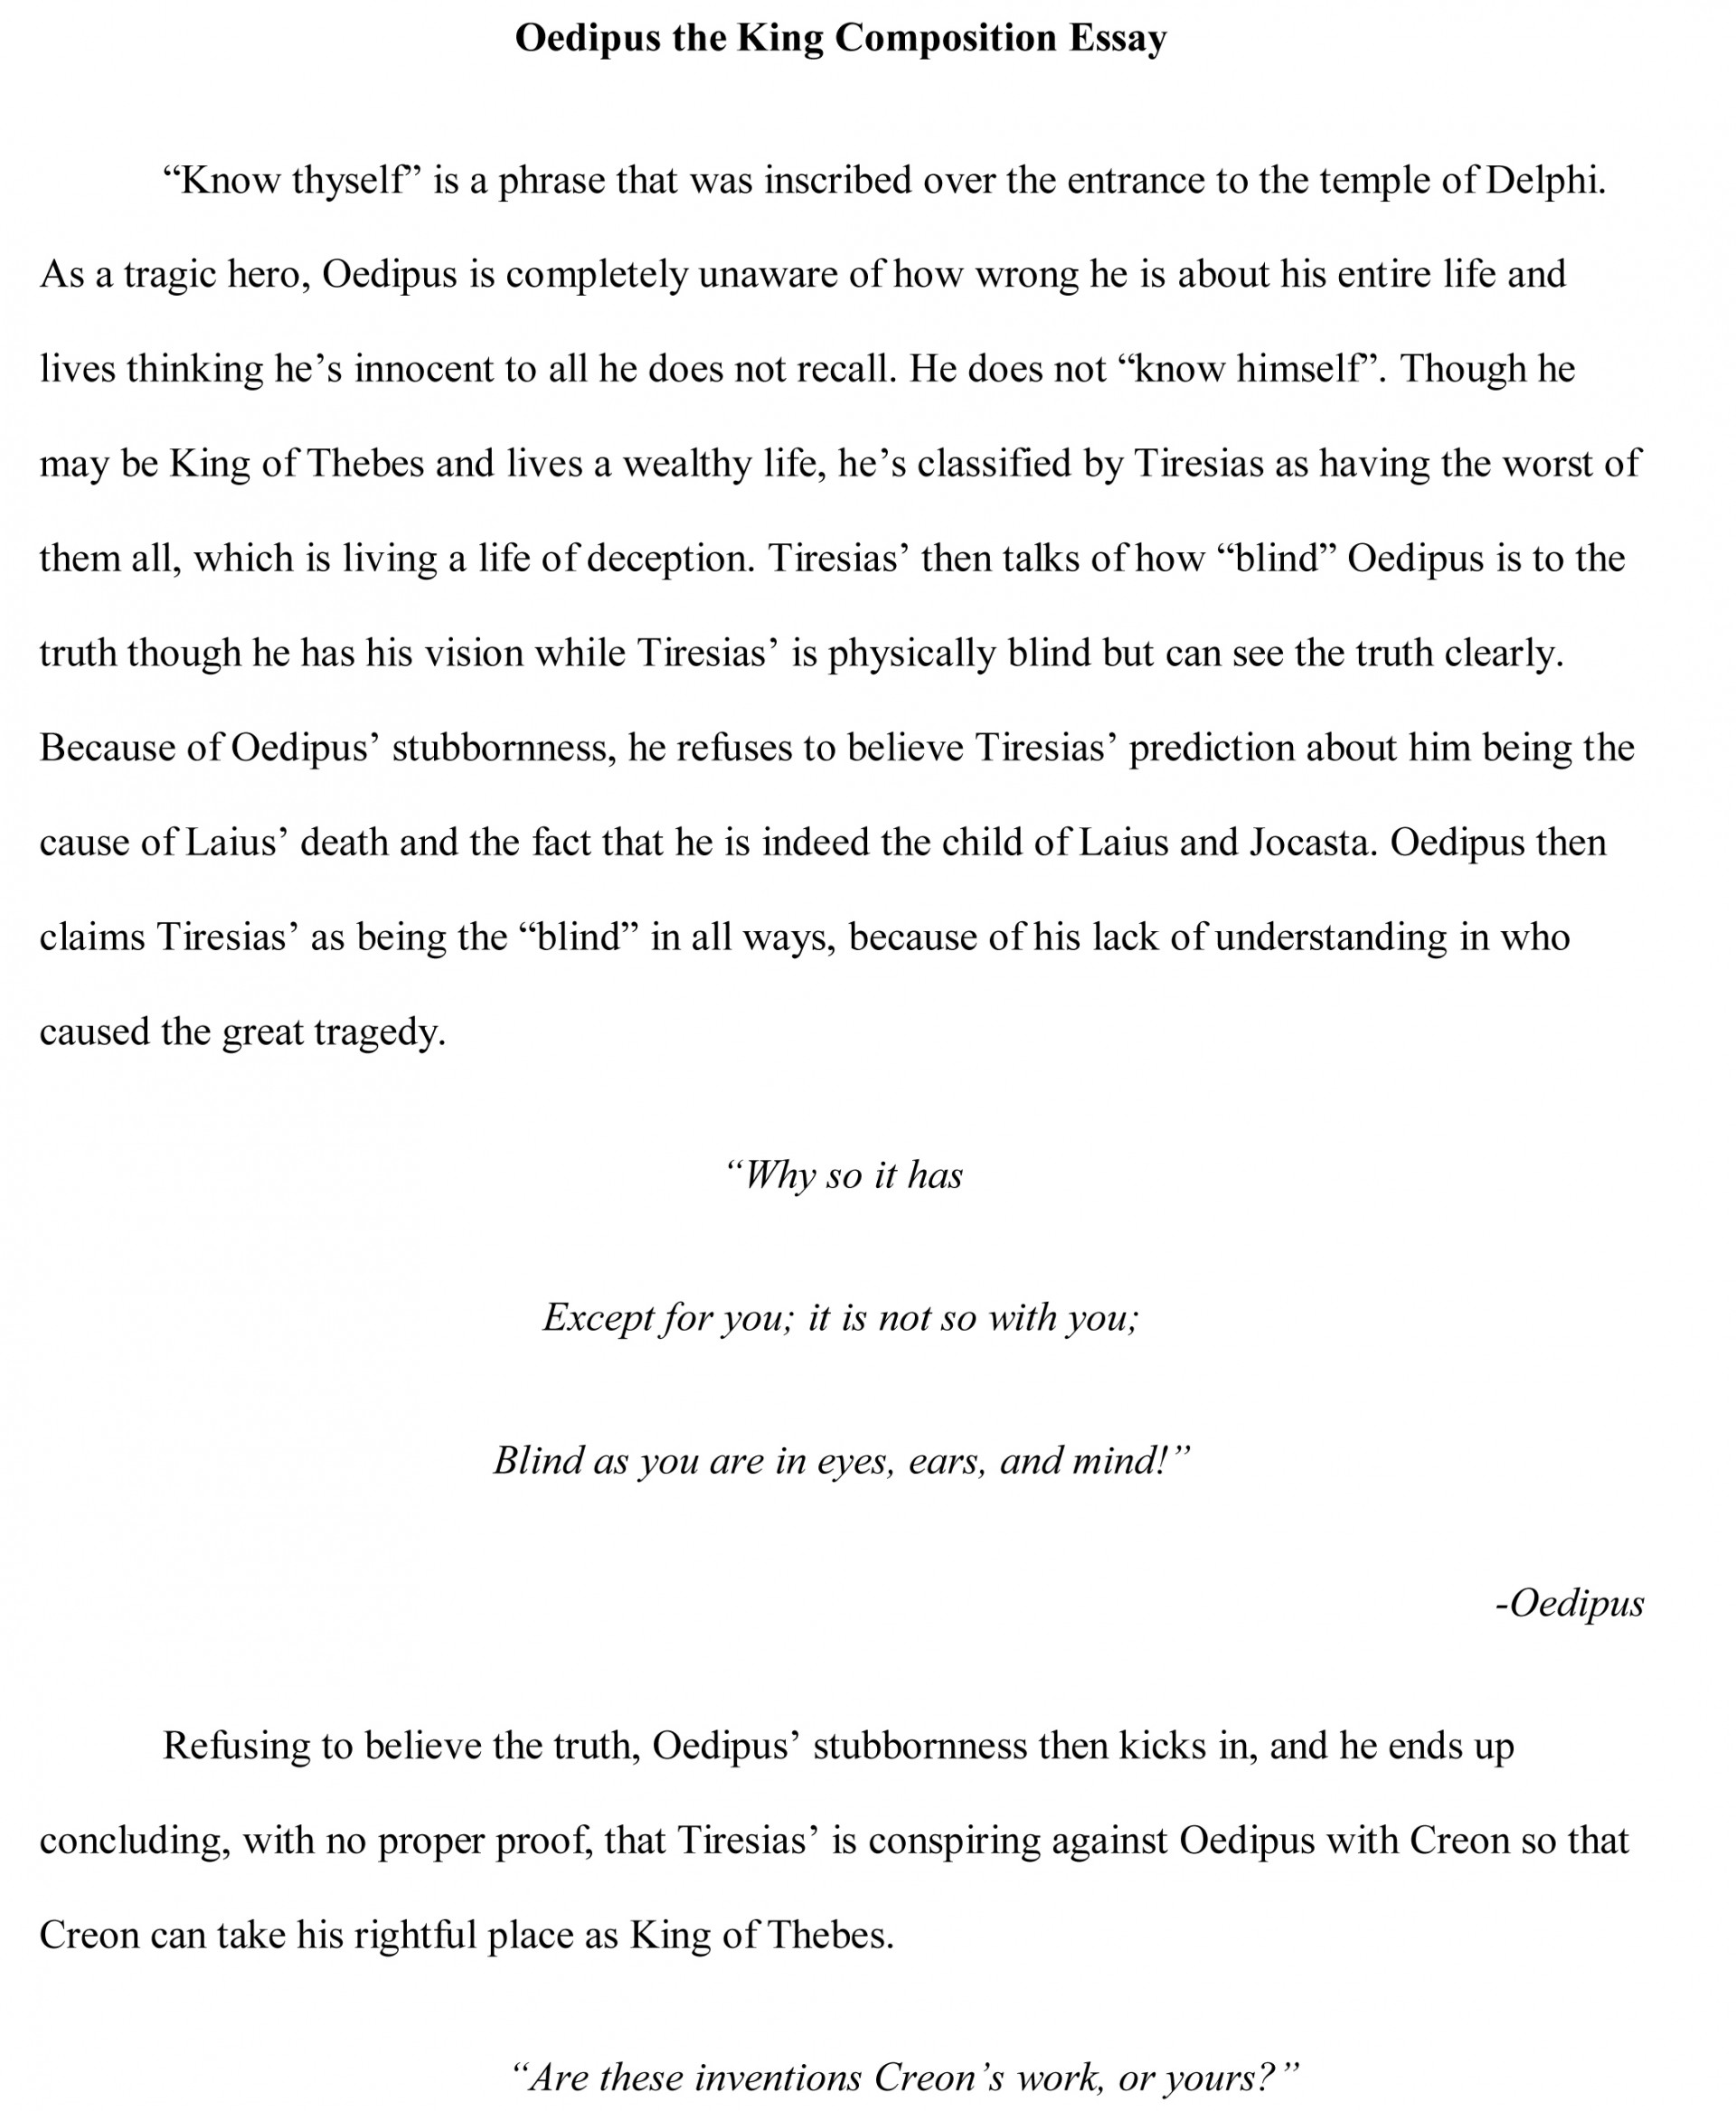 007 Essay Example Oedipus Free Sample Prompt Incredible Examples College Writing For 4th Grade Prompts Expository High School 1920